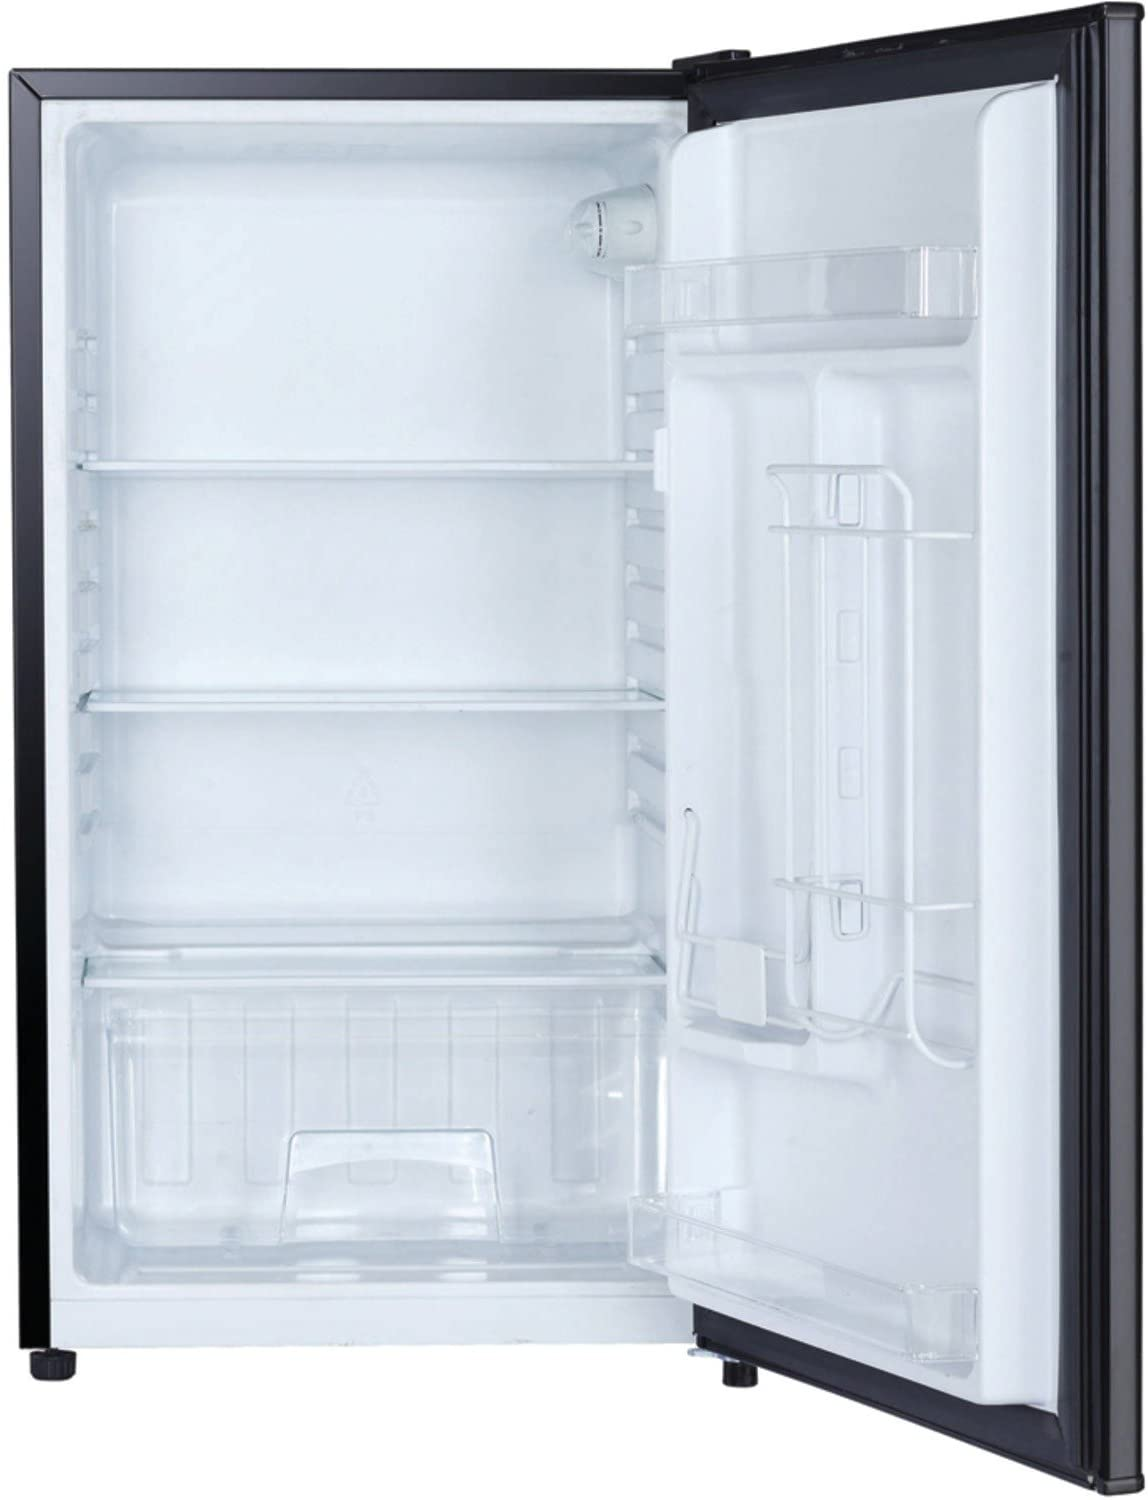 Magic Chef Mini Fridge Review